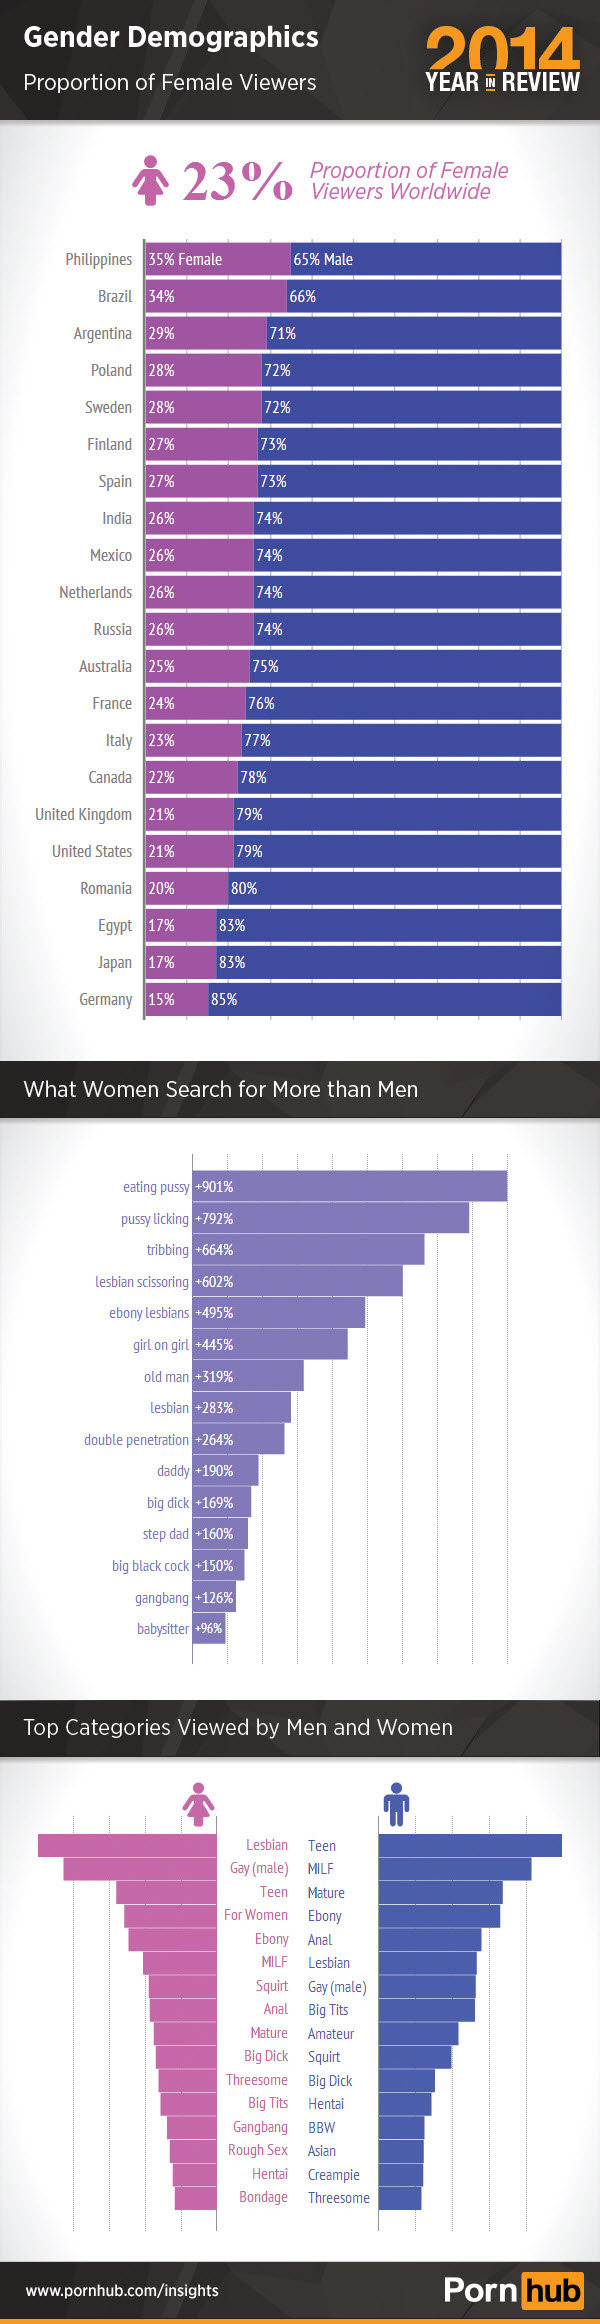 3-pornhub-2014-gender-demographics